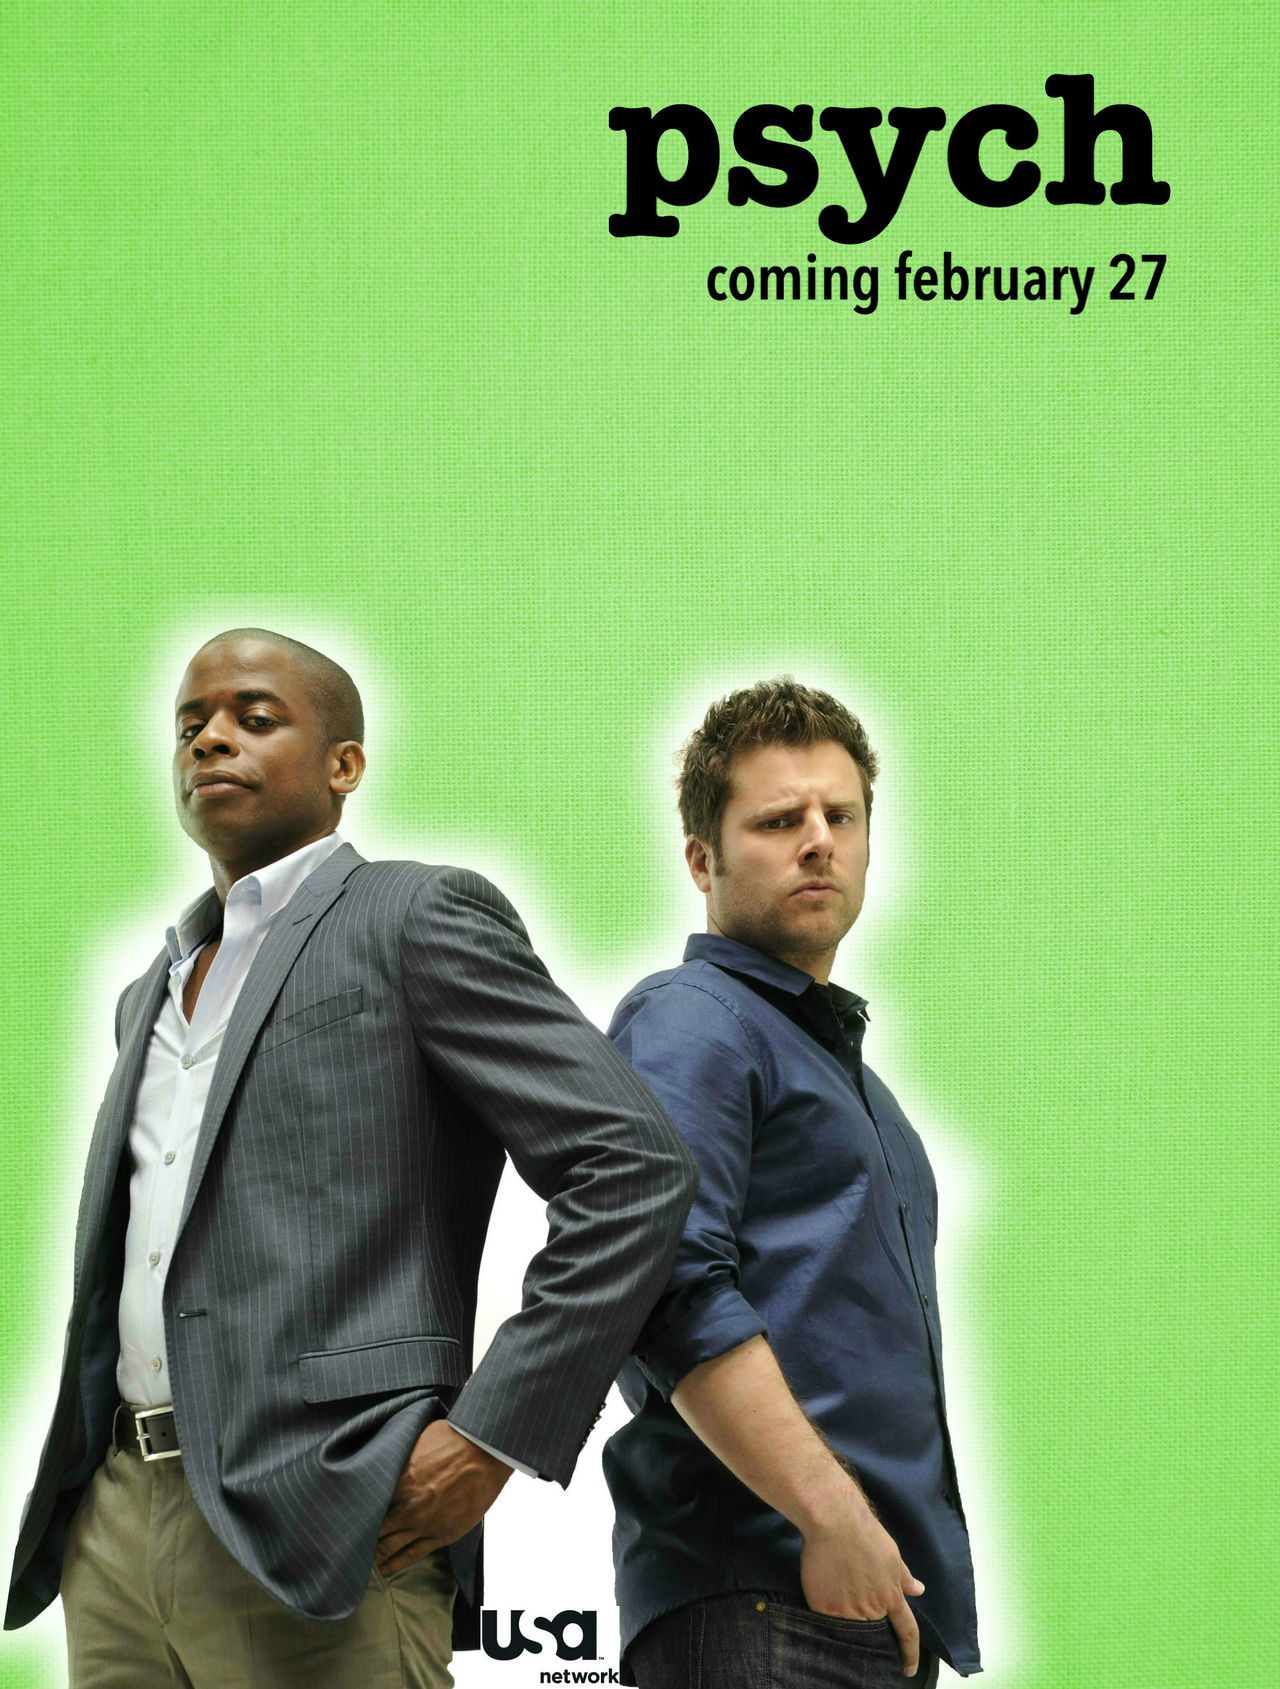 When does shawn start dating juliet in psych